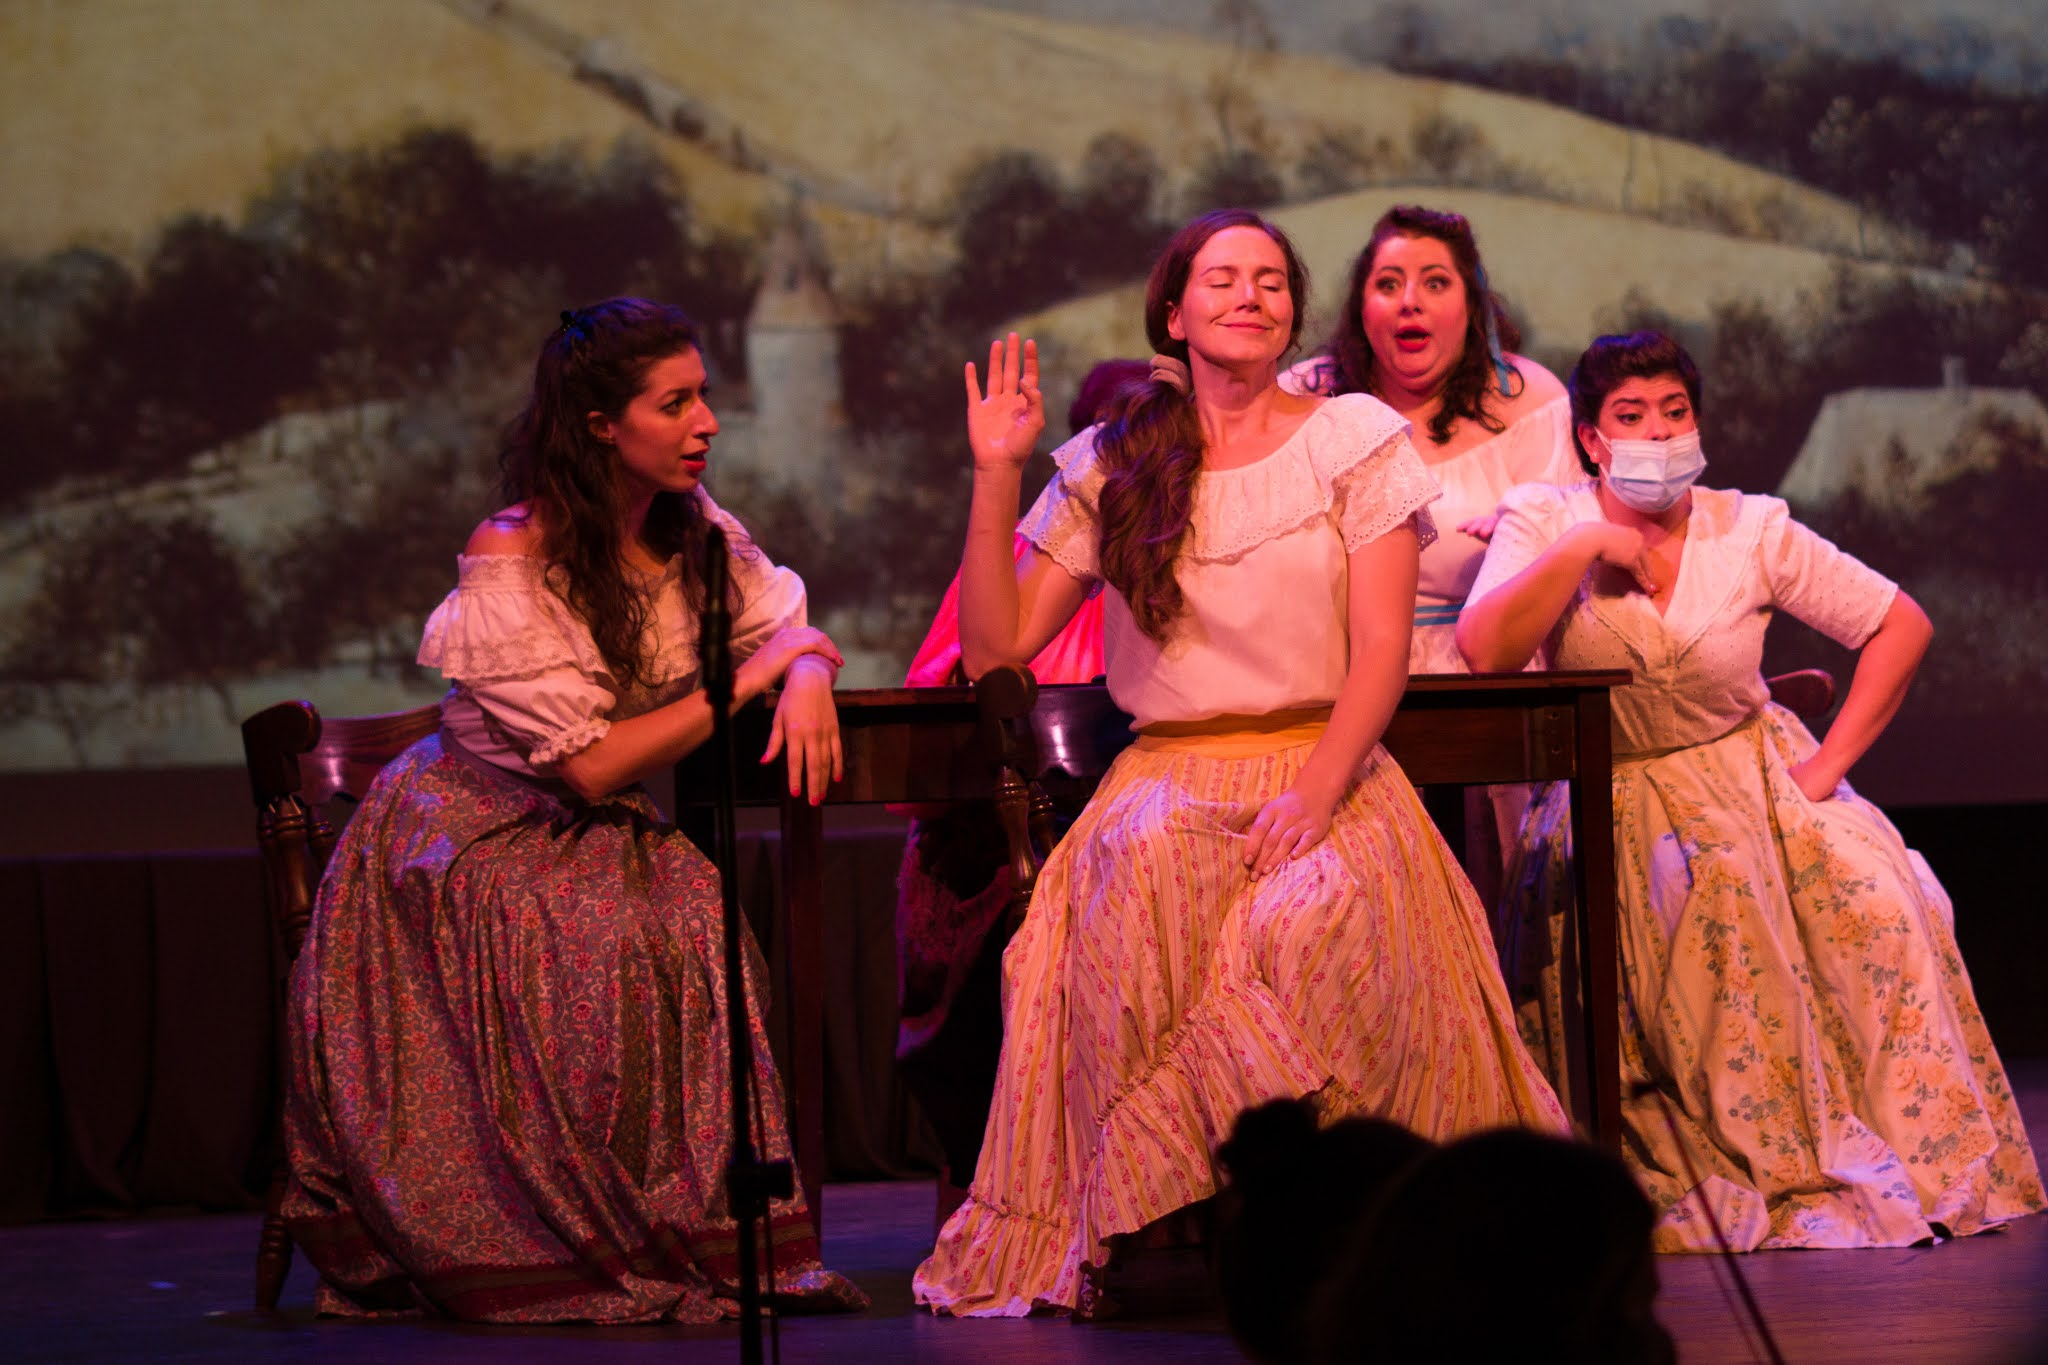 IN REVIEW: sopranos KIRSTEN SCOTT (center left) and MICHELLE TROVATO (center right), who alternated as Giannetta in Opera in Williamsburg's September 2021 production of Gaetano Donizetti's L'ELISIR D'AMORE [Photograph © by Diego Valdez; used with permission]